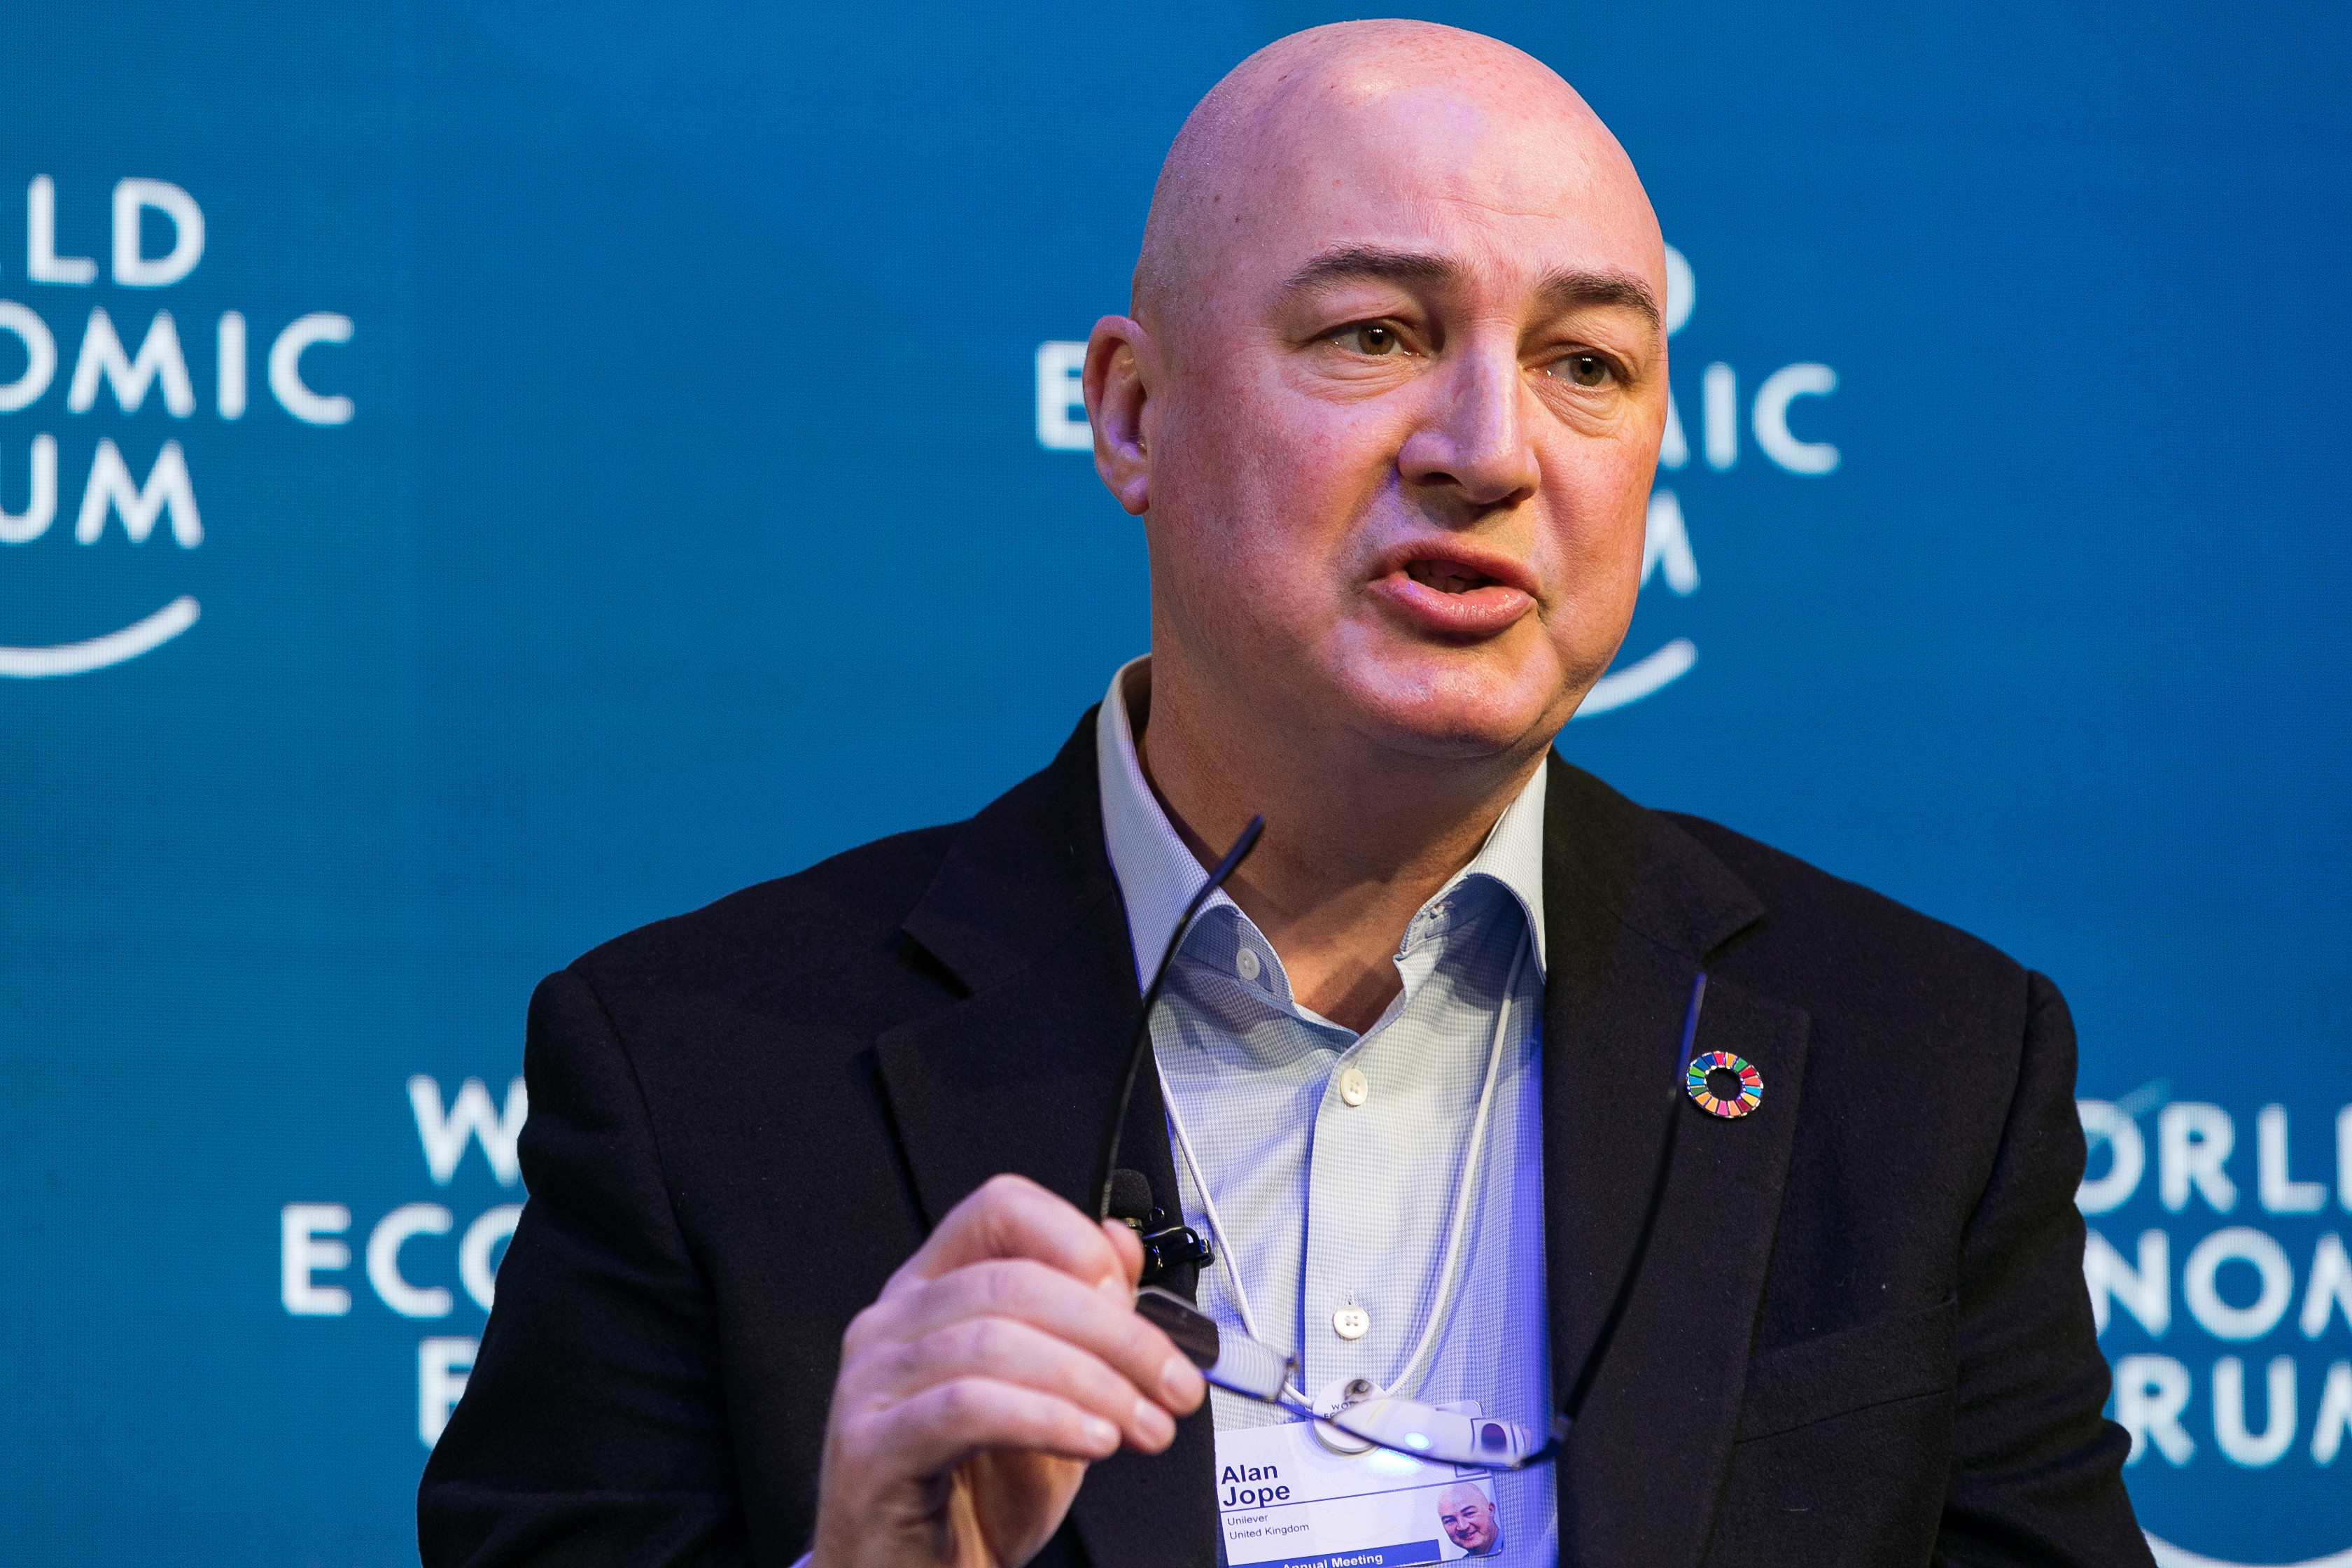 "Alan Jope, Chief Executive Officer, Unilever, United Kingdom speaking during the Session ""Strategic Outlook on Consumption"" at the Annual Meeting 2019 of the World Economic Forum in Davos, January 22, 2019. Congress Centre - Aspen 2.Copyright by World Economic Forum / Jakob Polacsek"